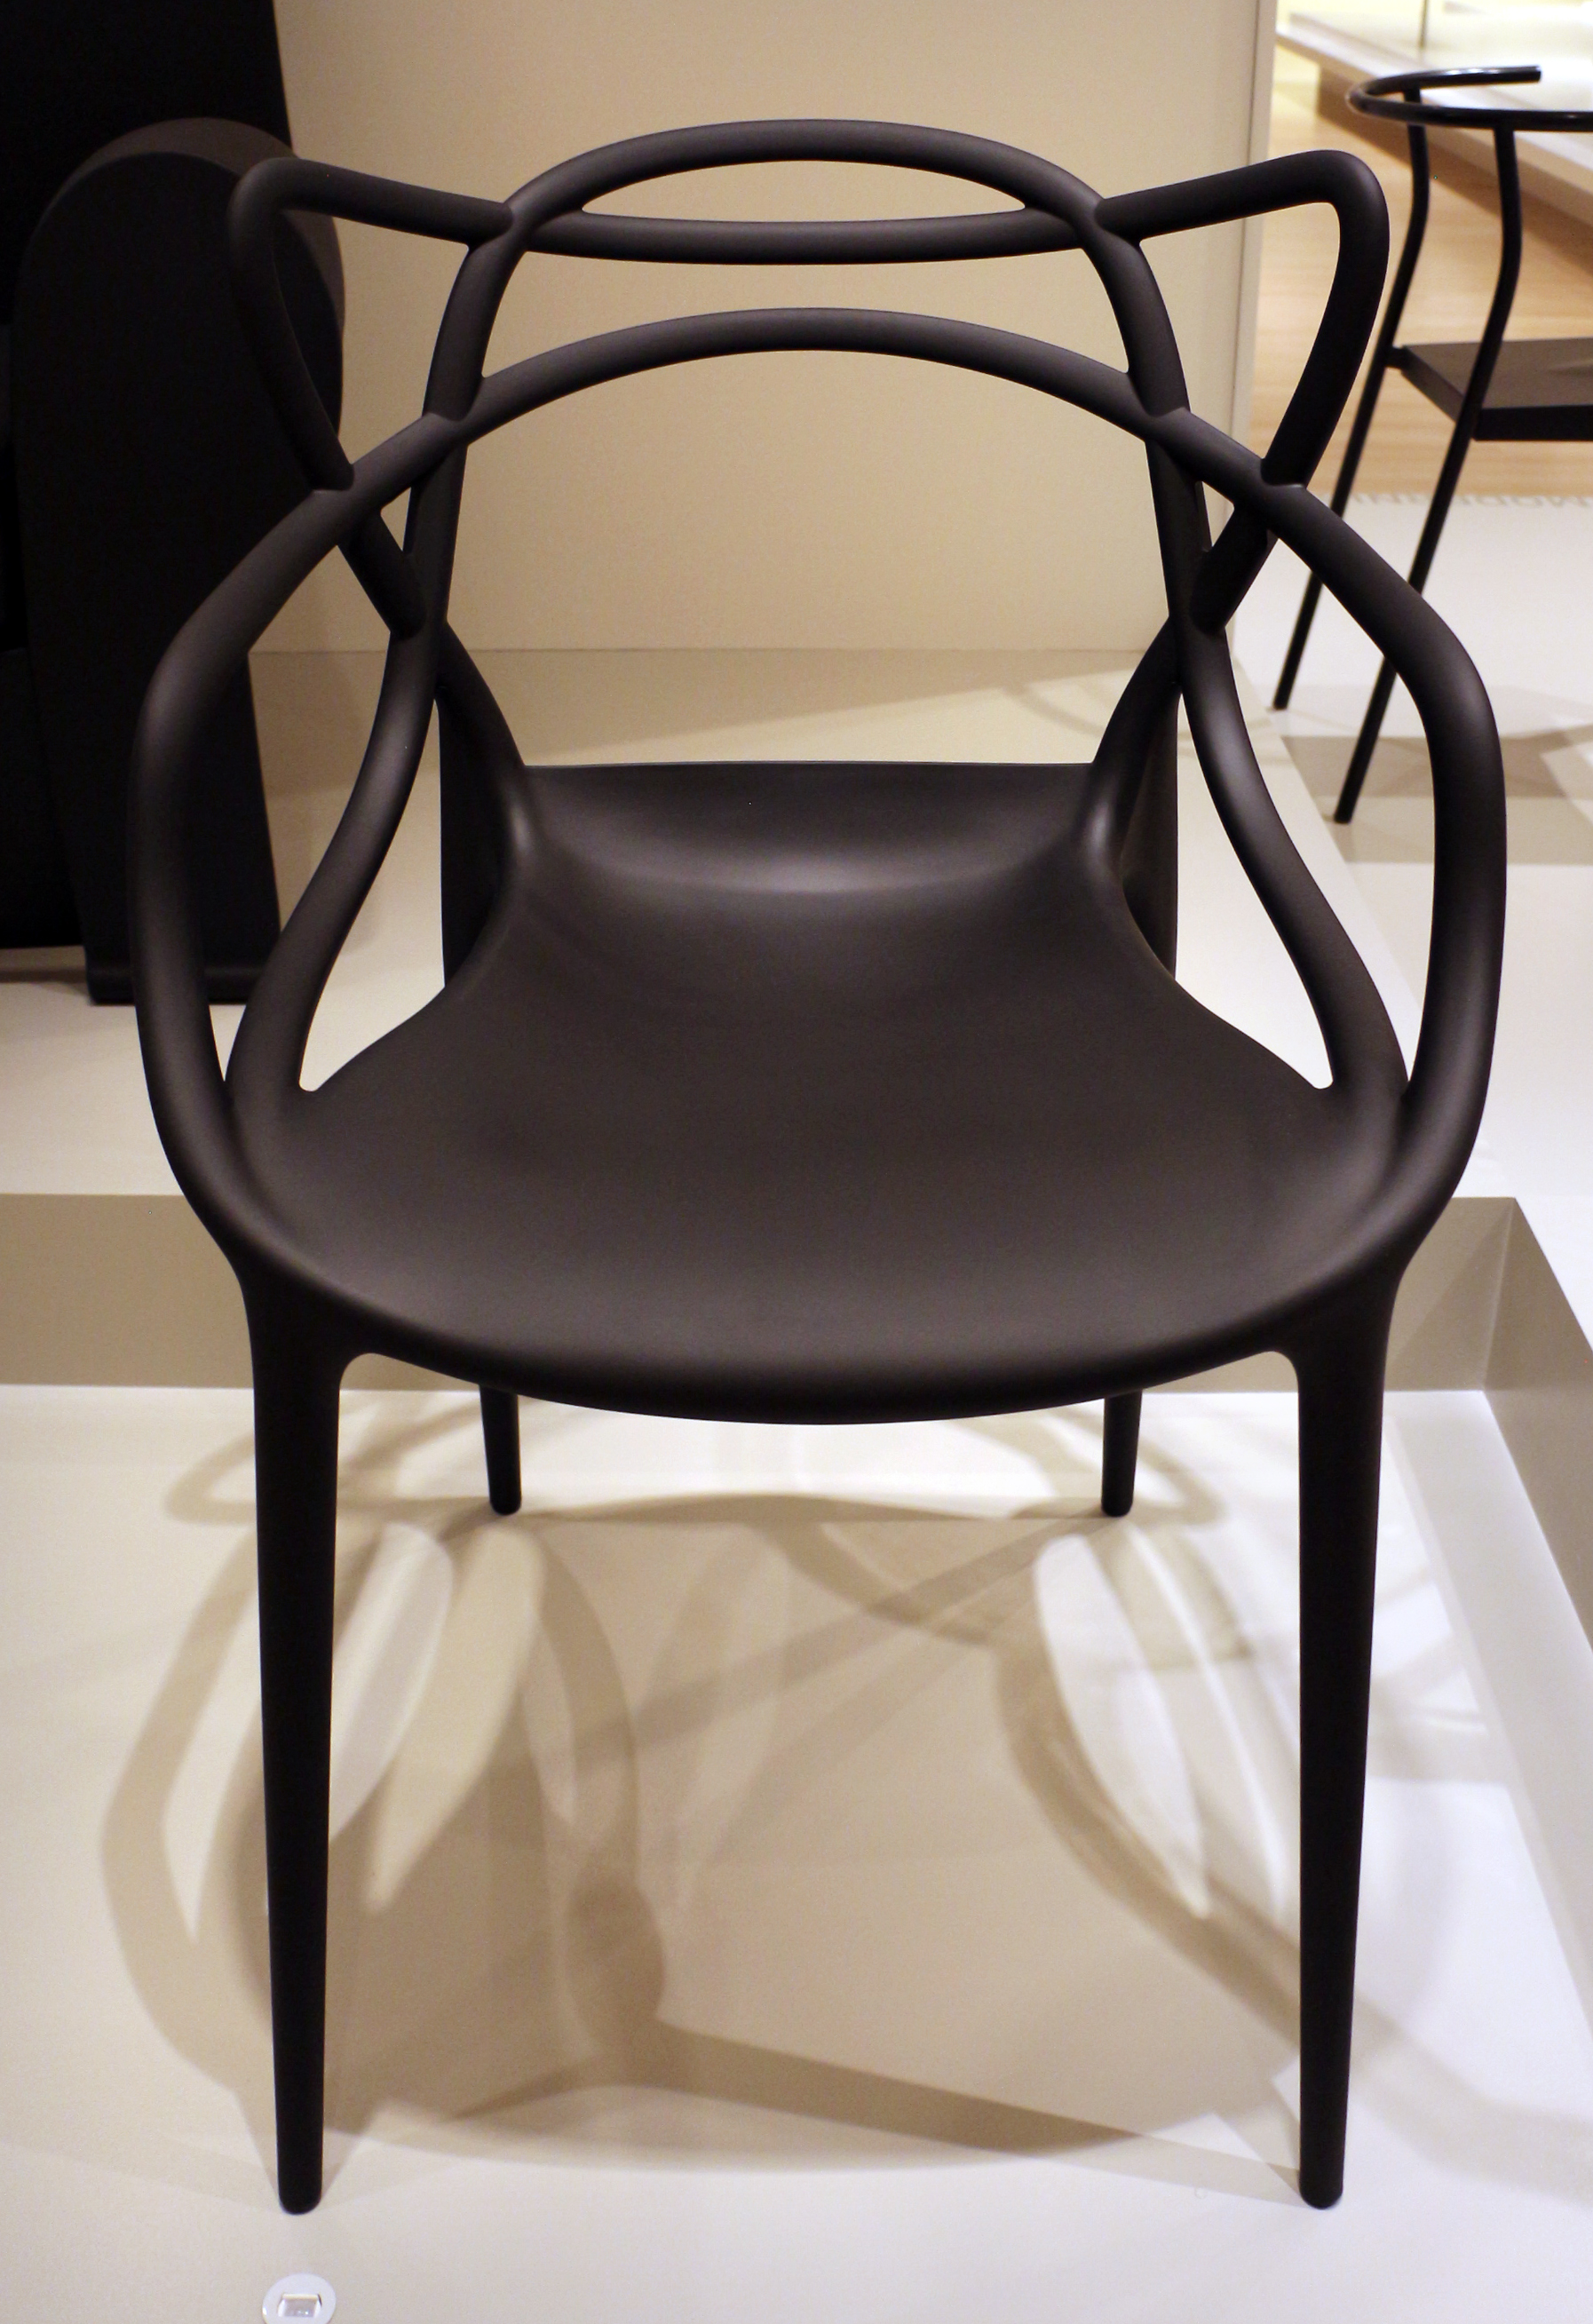 File:Philippe starck per kartell spa, sedia louis ghost, 2002.jpg ...